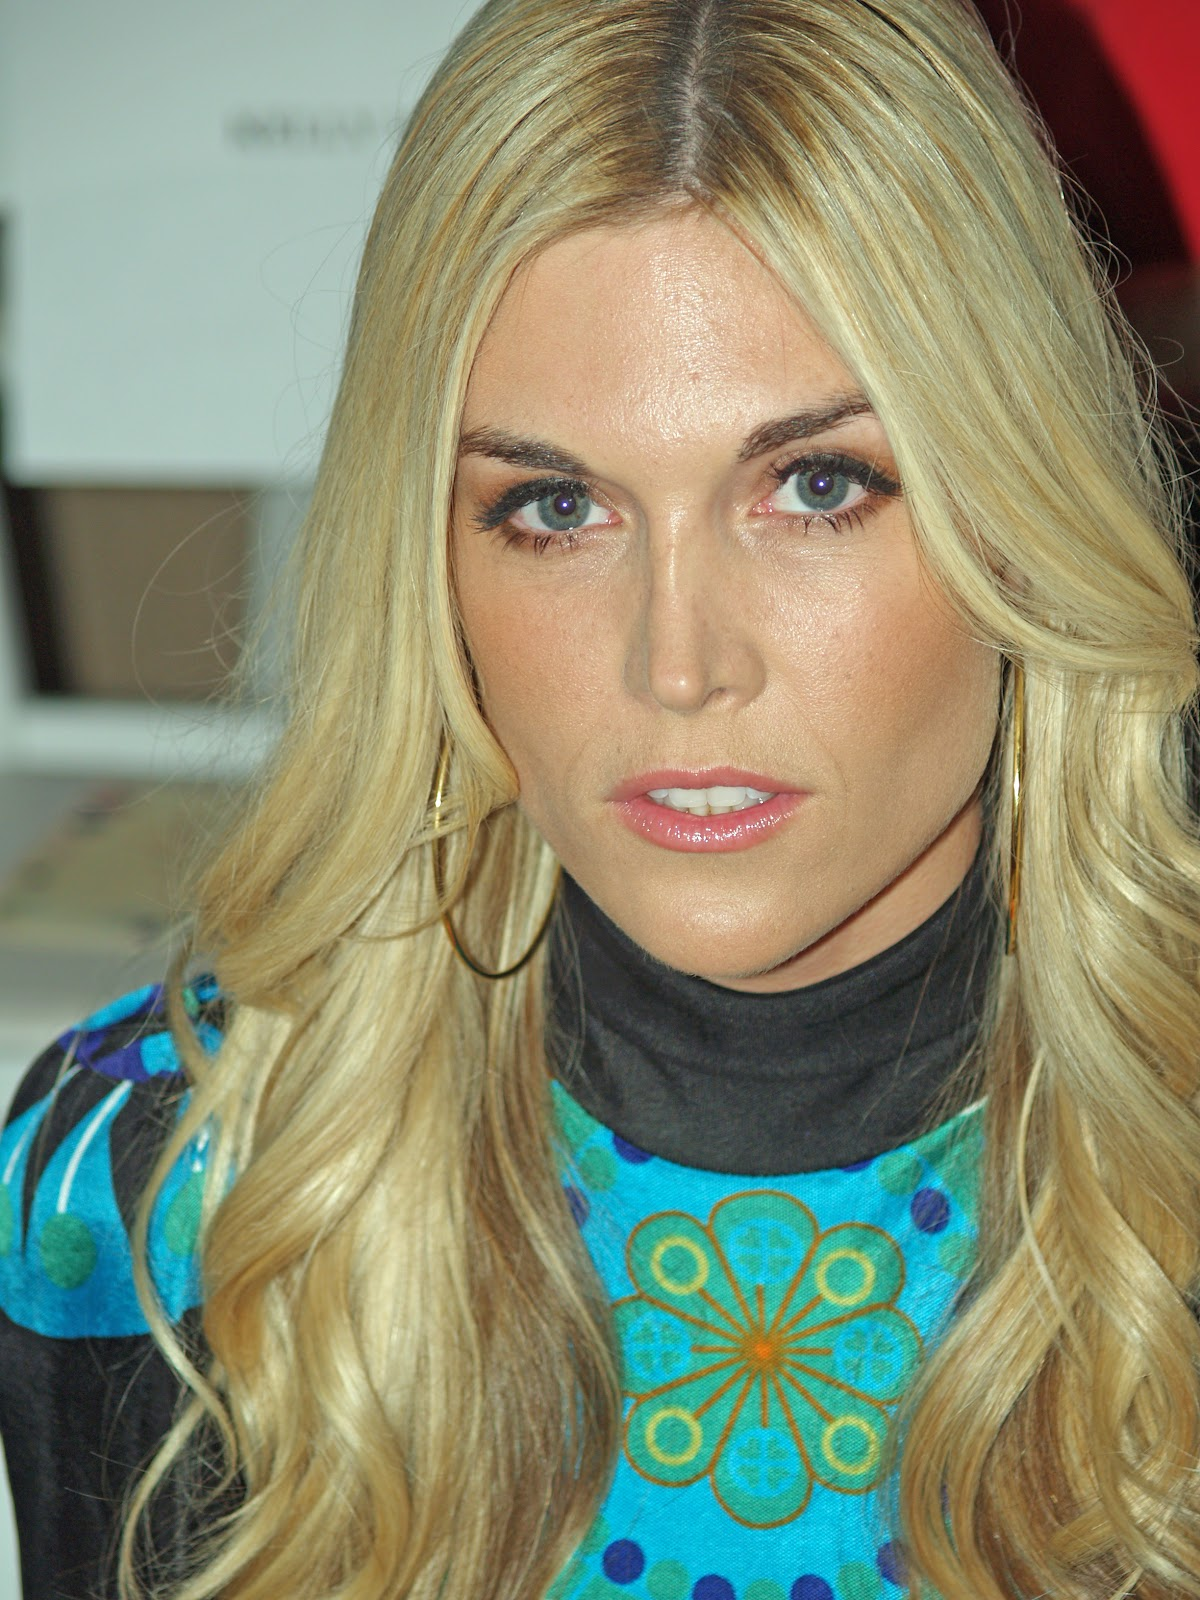 https://upload.wikimedia.org/wikipedia/commons/0/0d/Tinsley_Mortimer_at_Mercedes-Benz_Fashion_Week.jpg